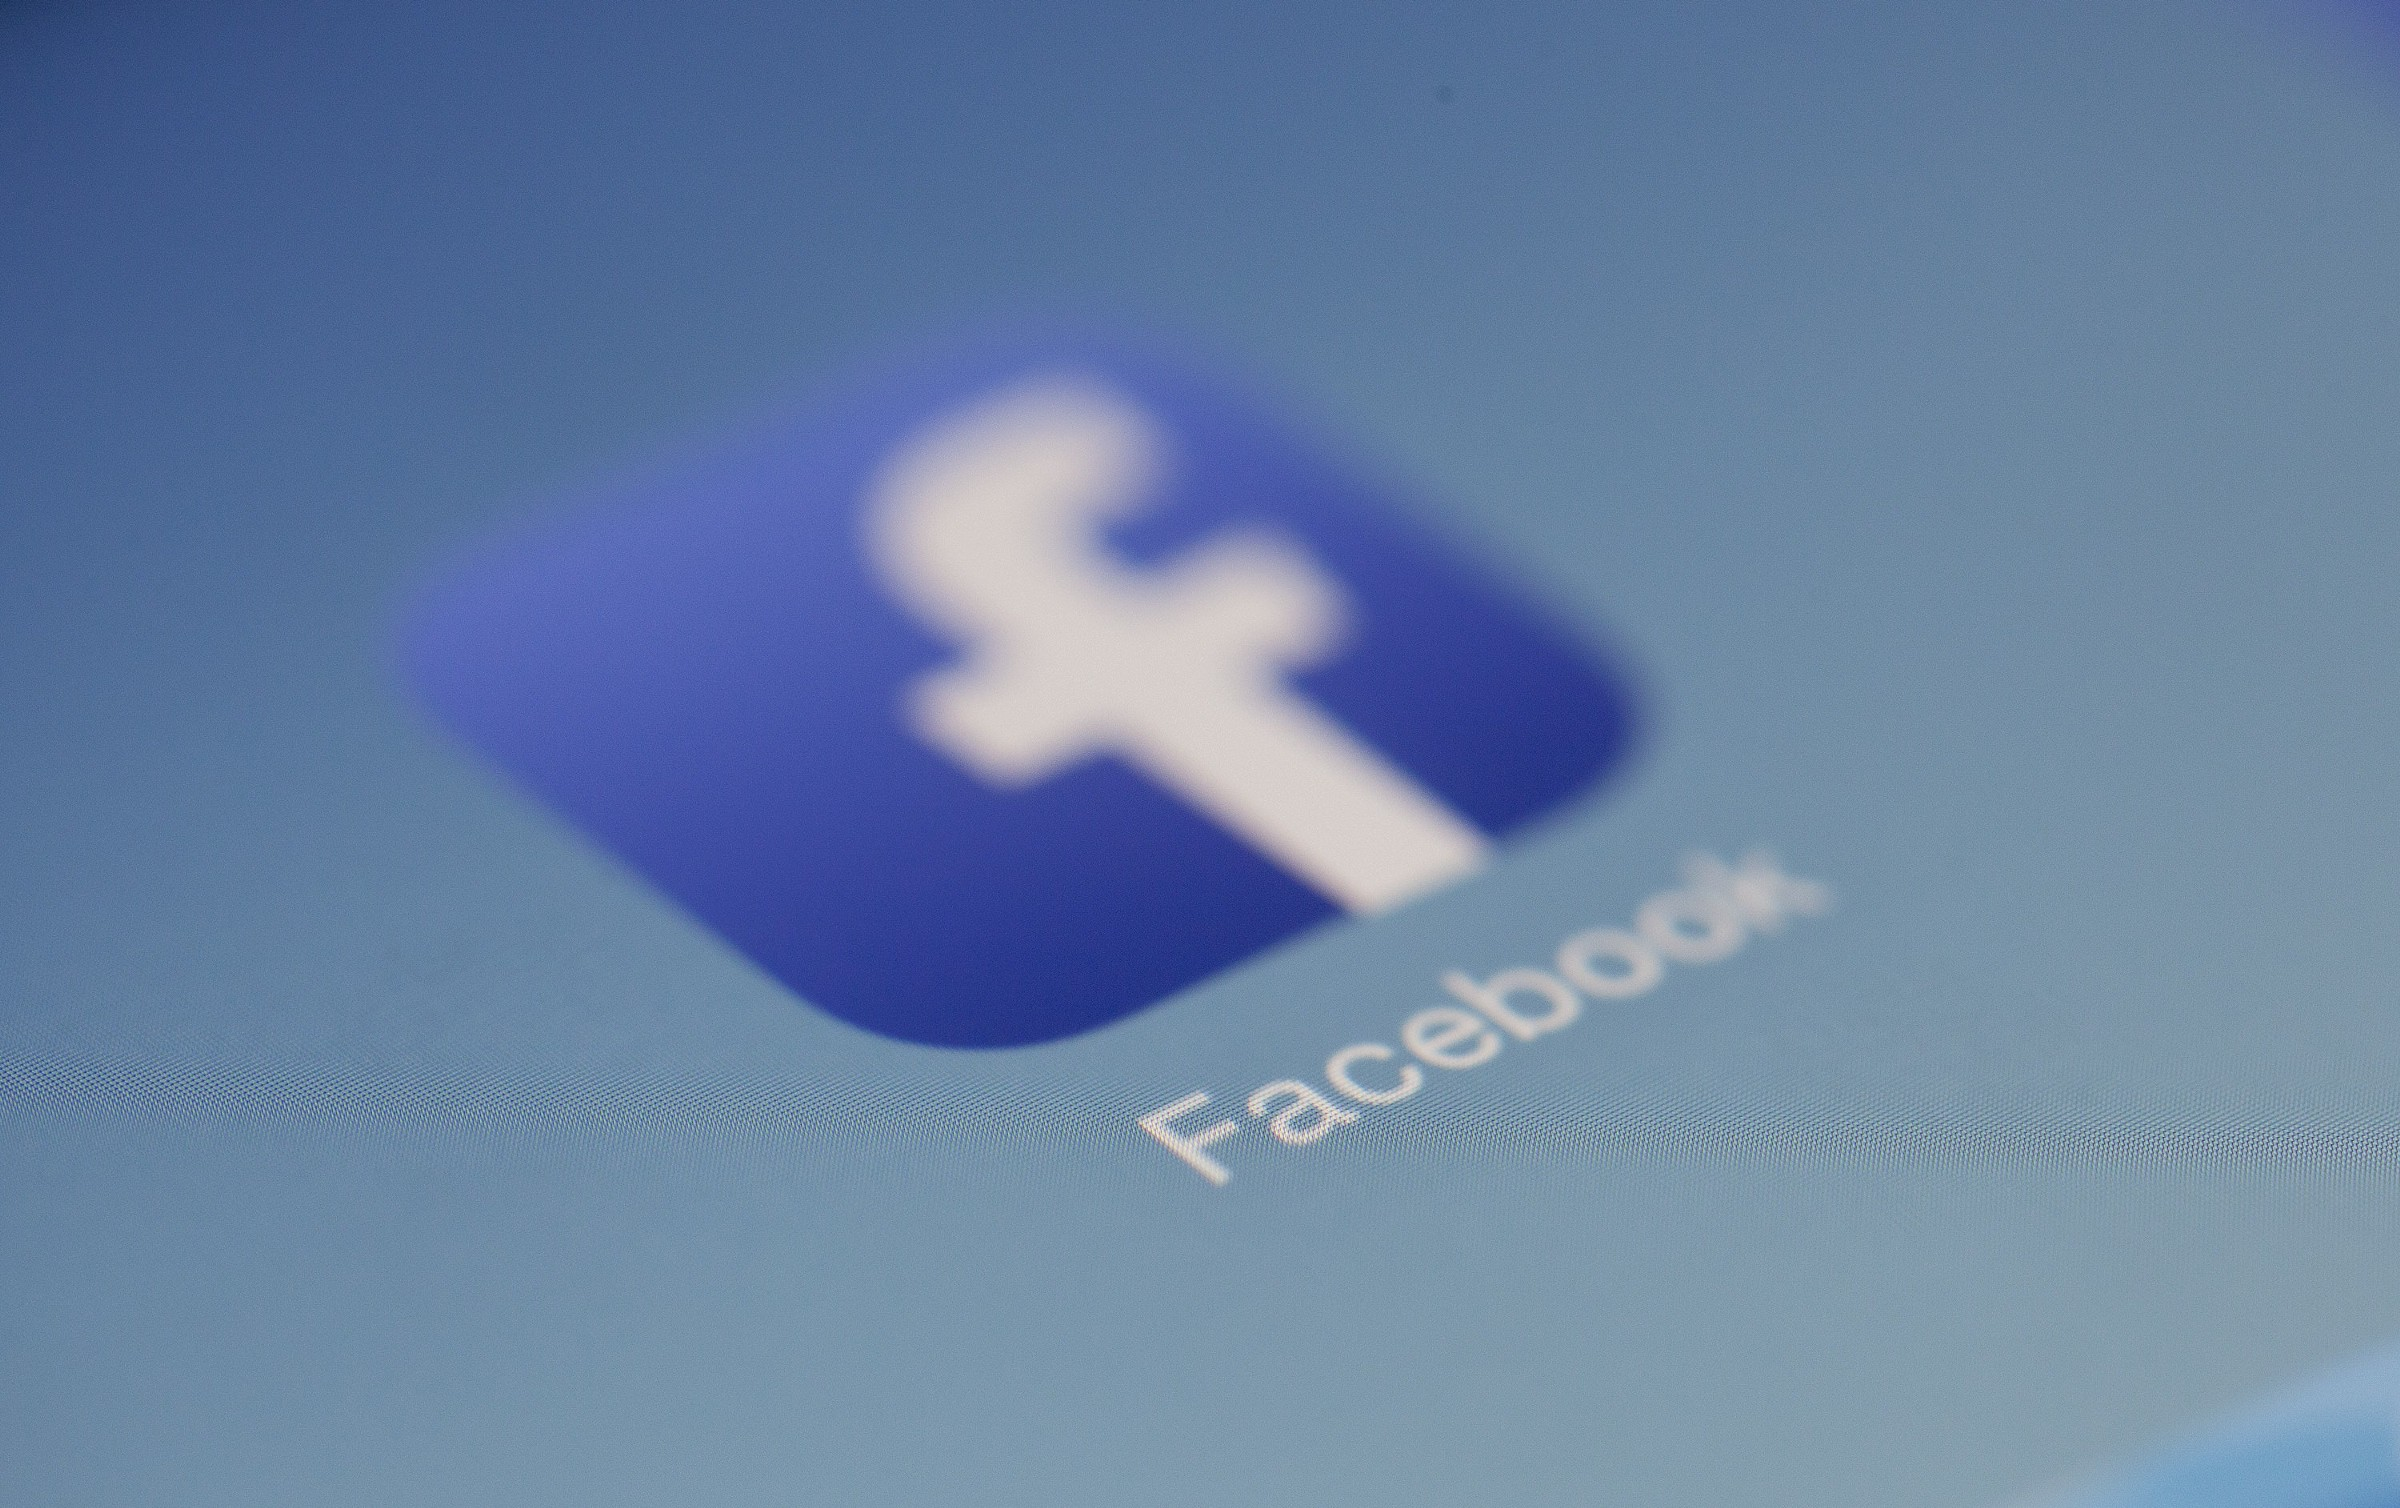 Who Takes Responsability for Facebook's Ethical Decisions? - By